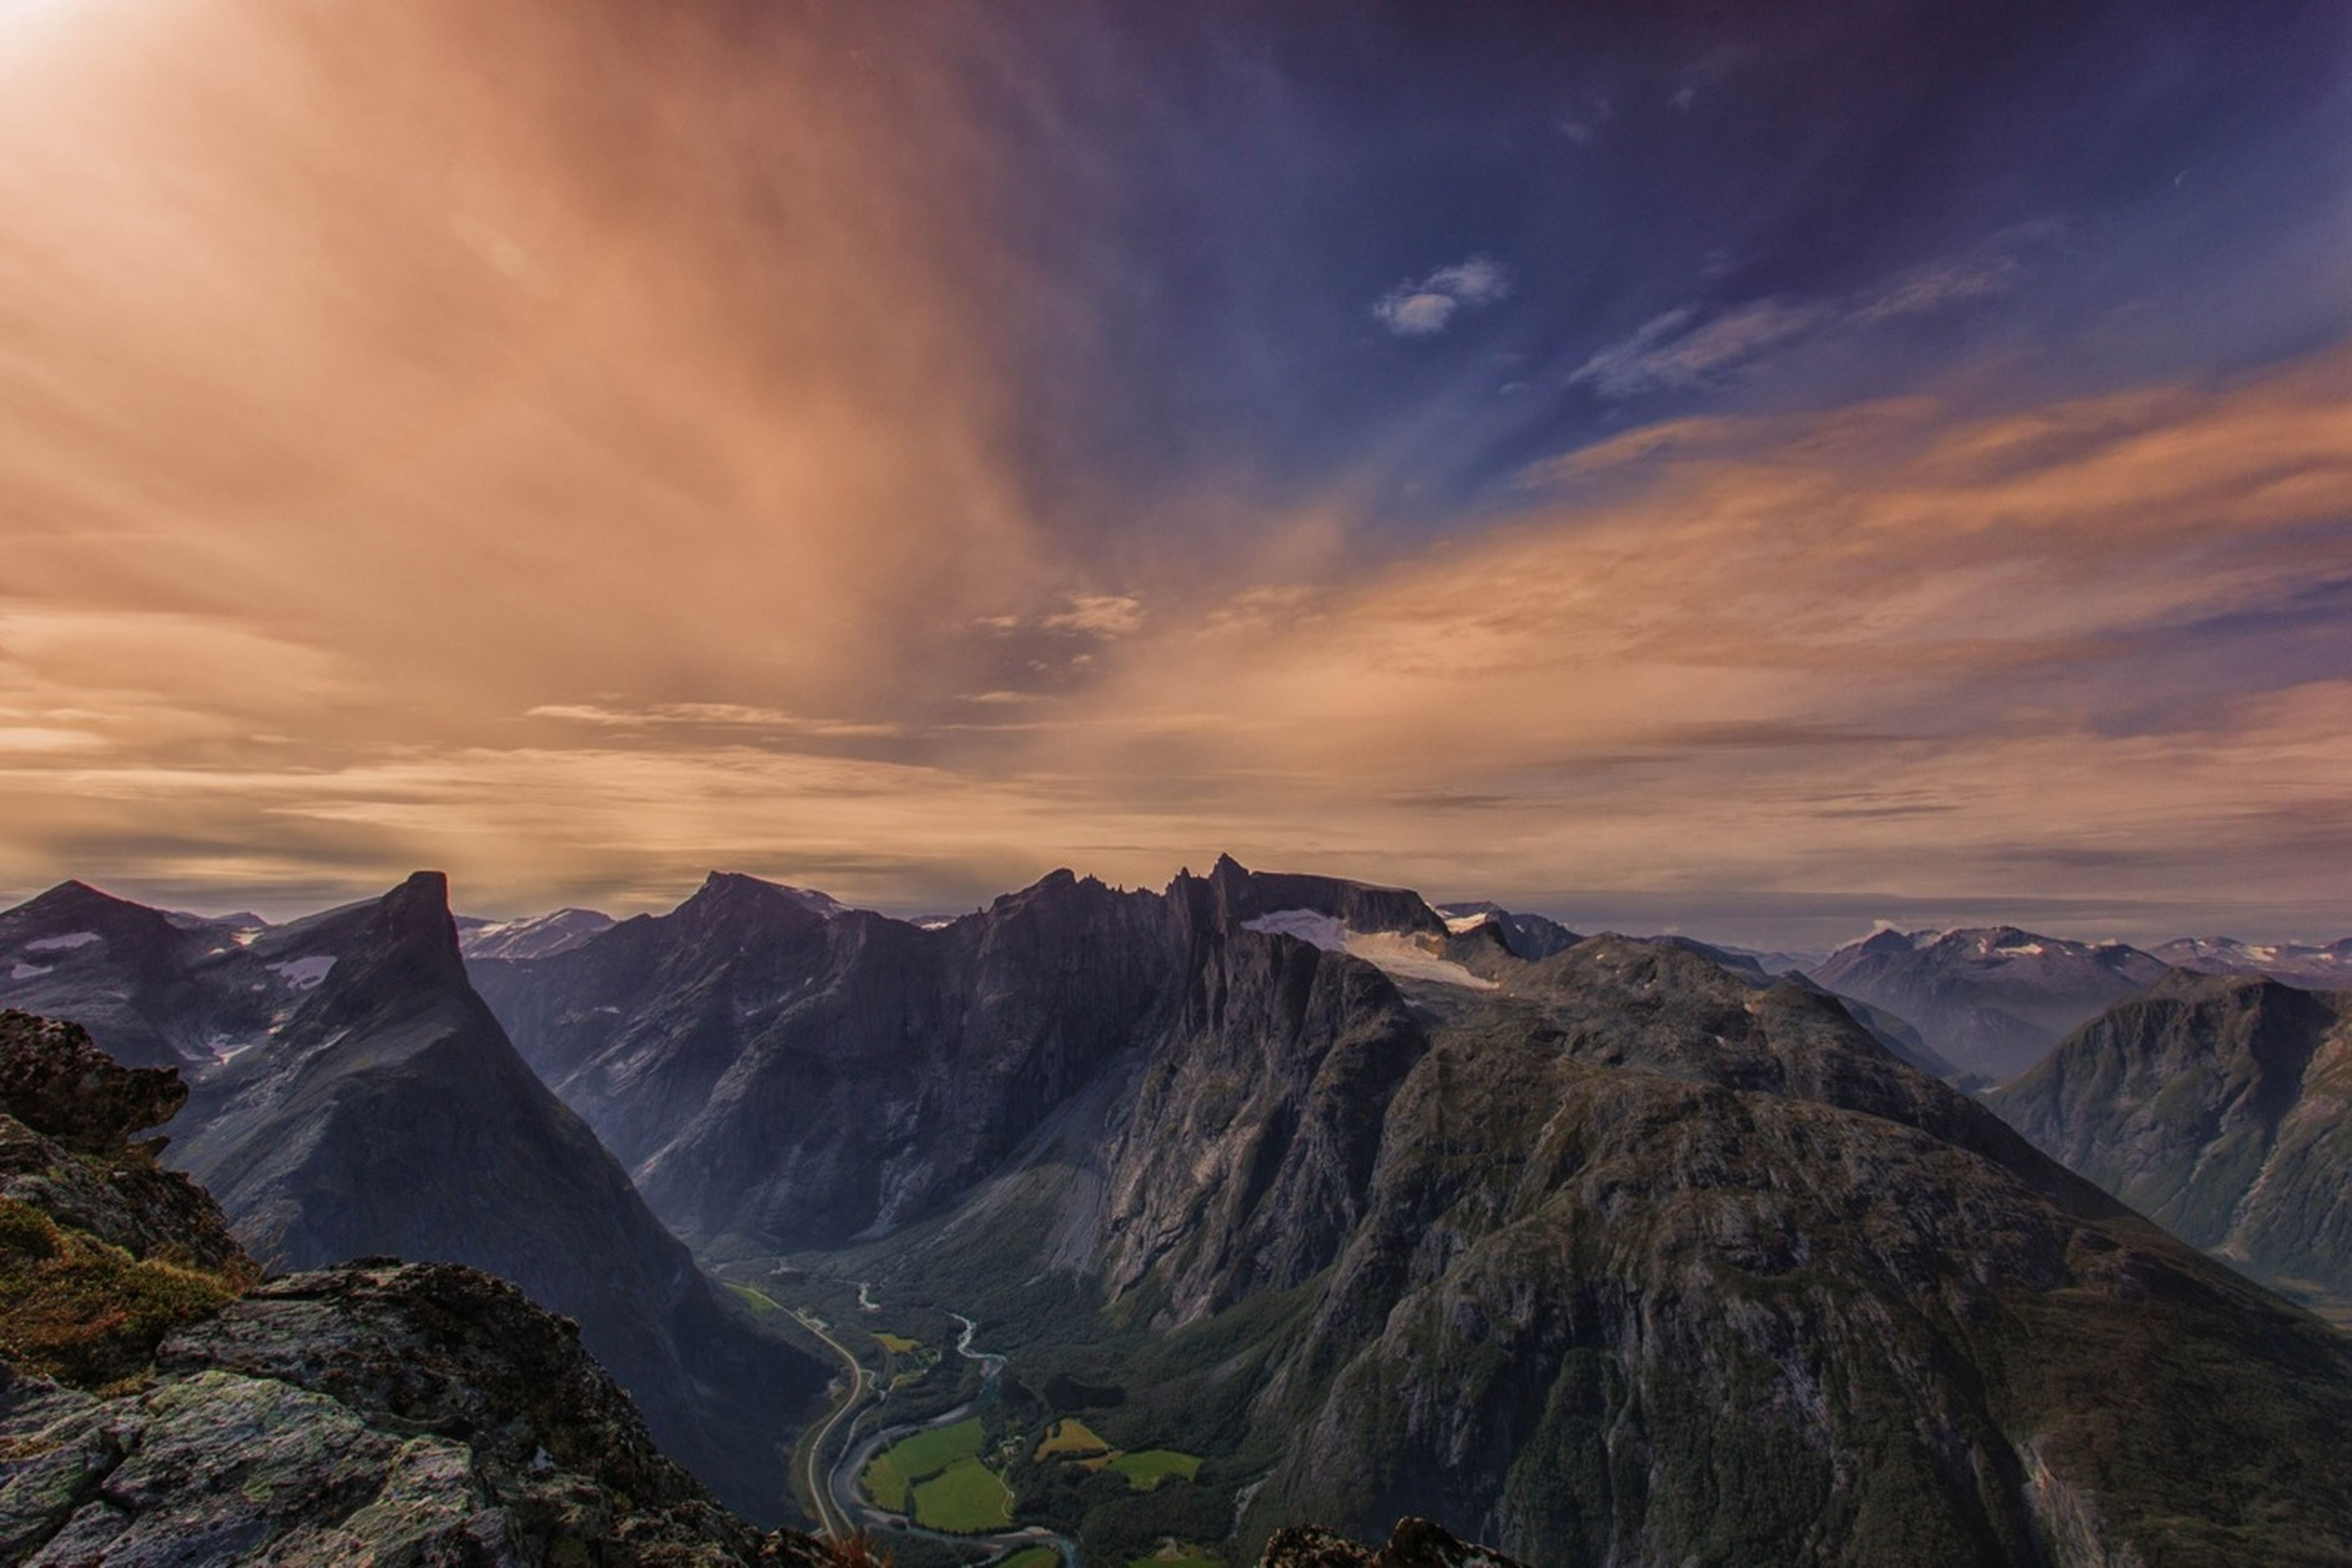 mountain, scenics, tranquil scene, beauty in nature, tranquility, sky, mountain range, snow, nature, cloud - sky, winter, cold temperature, sunset, idyllic, landscape, physical geography, non-urban scene, season, weather, majestic